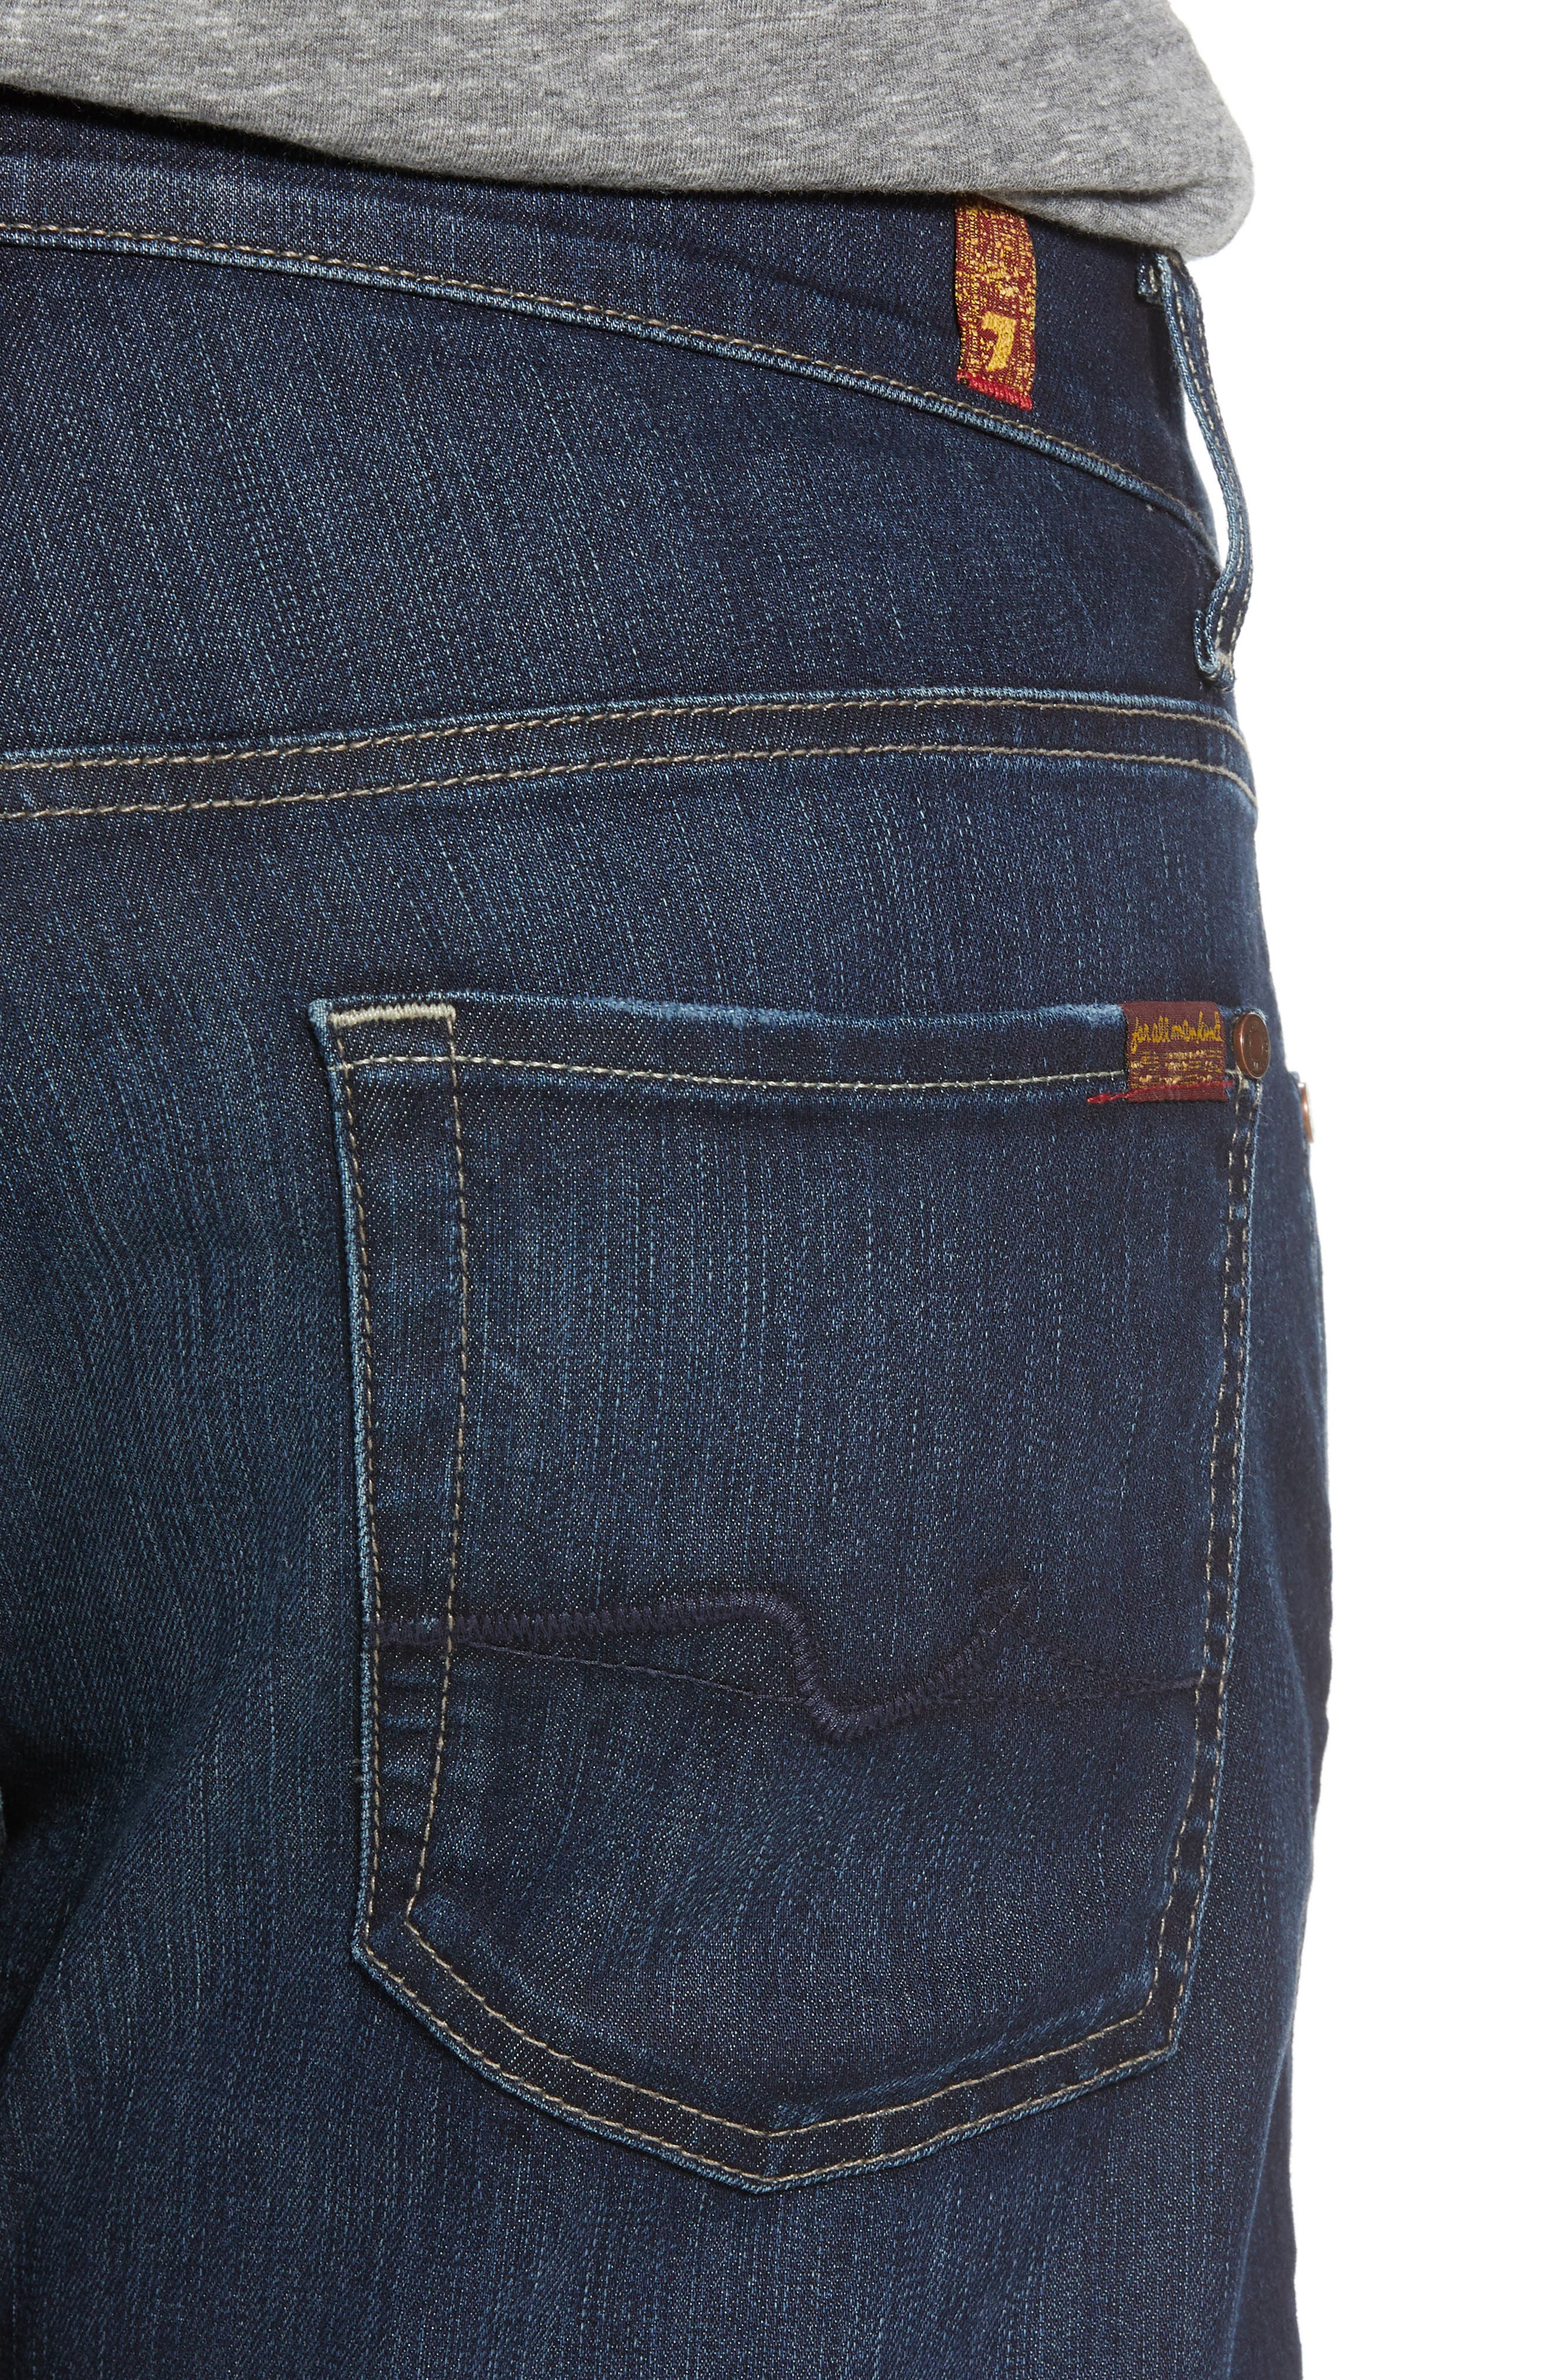 Airweft Austyn Relaxed Straight Leg Jeans,                             Alternate thumbnail 4, color,                             406